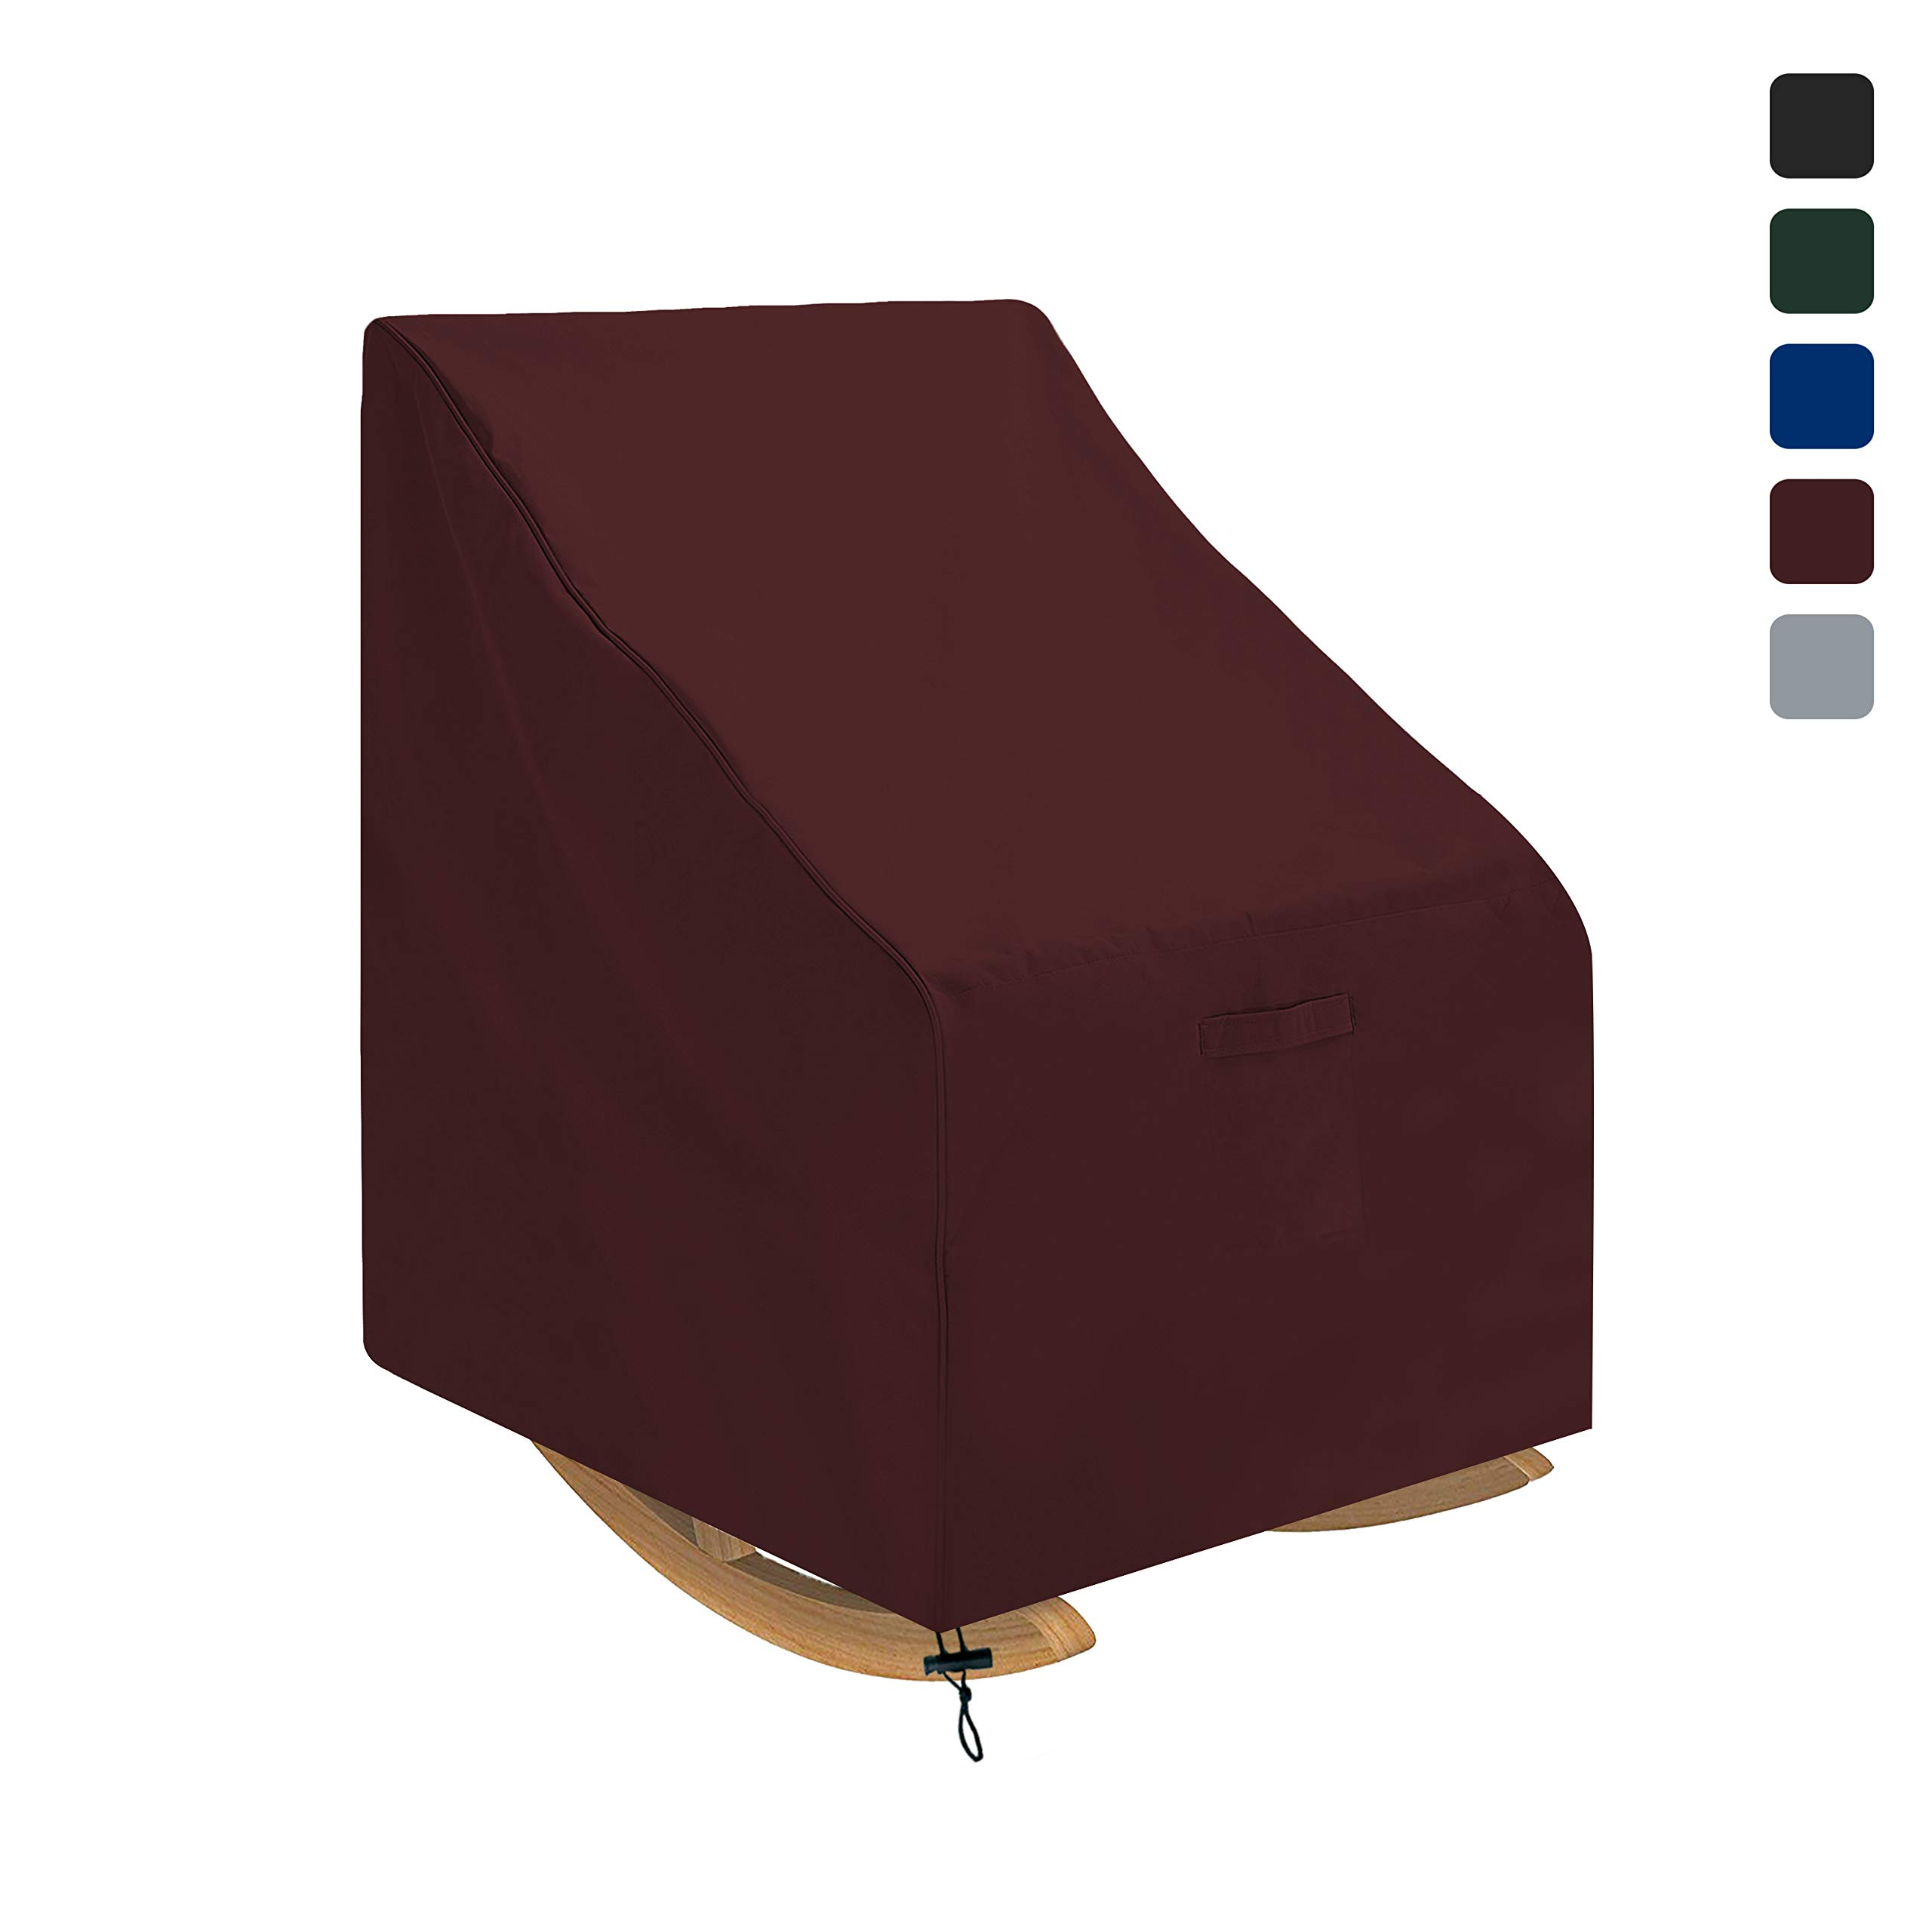 COVERS & ALL Outdoor Rocking Chair Cover Waterproof 18 Oz - 100% UV & Weather Resistant Patio Chair Cover with Air Pockets and Drawstring for Snug Fit (36 W x 44 D x 45 H, Burgundy)